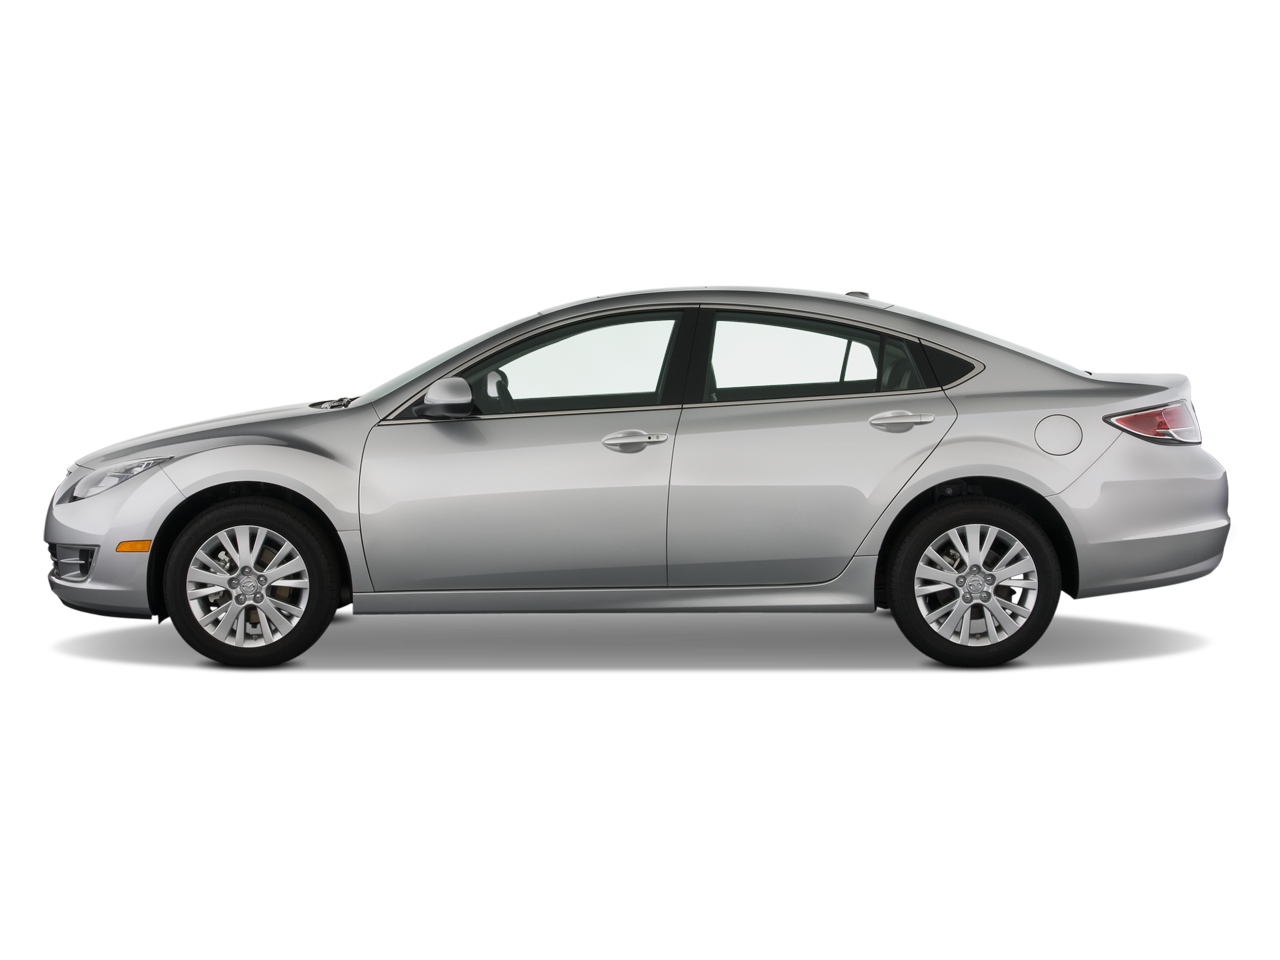 2009 Mazda 6 Pricing Announced Latest News Features